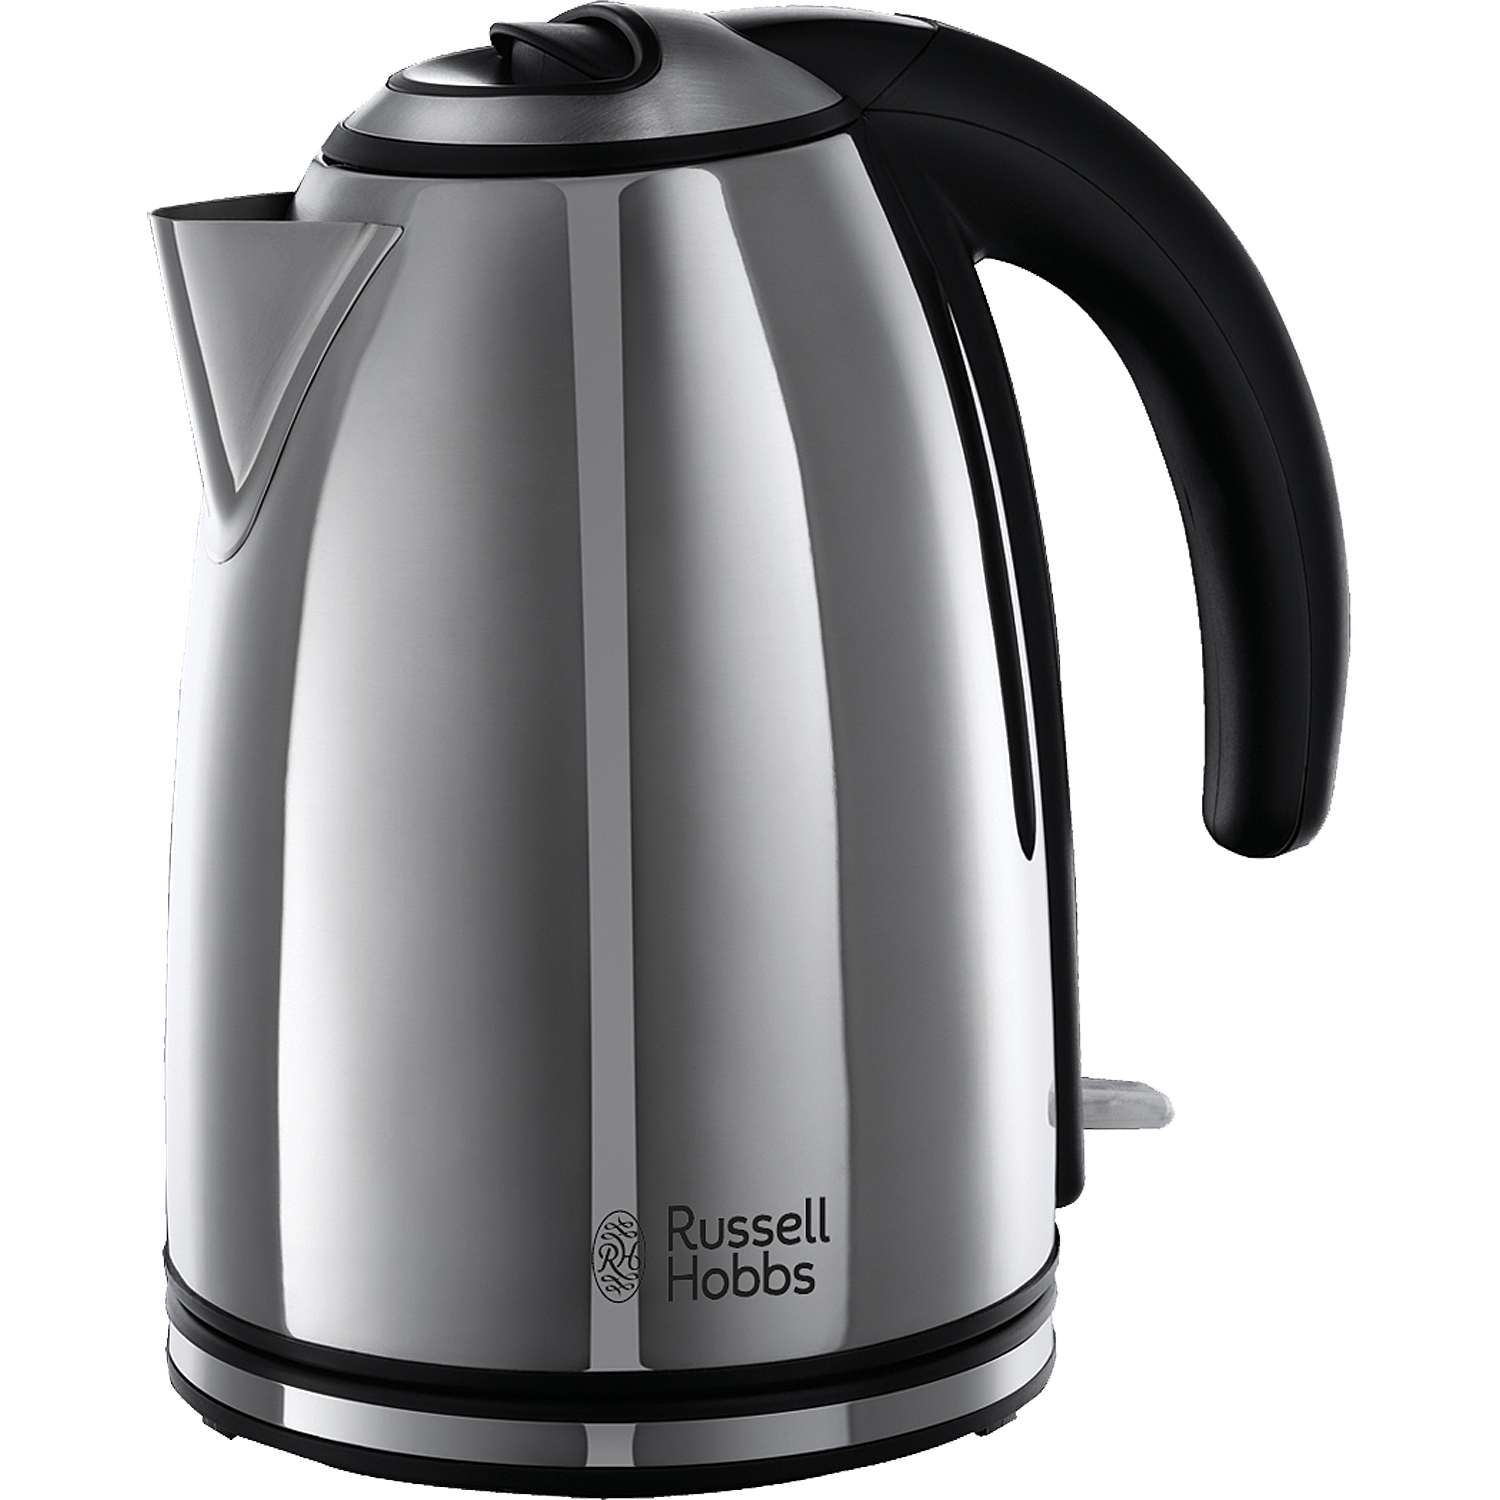 russell hobbs 19830 henley poliertem edelstahl 3000w 1 7l wasserkocher ebay. Black Bedroom Furniture Sets. Home Design Ideas